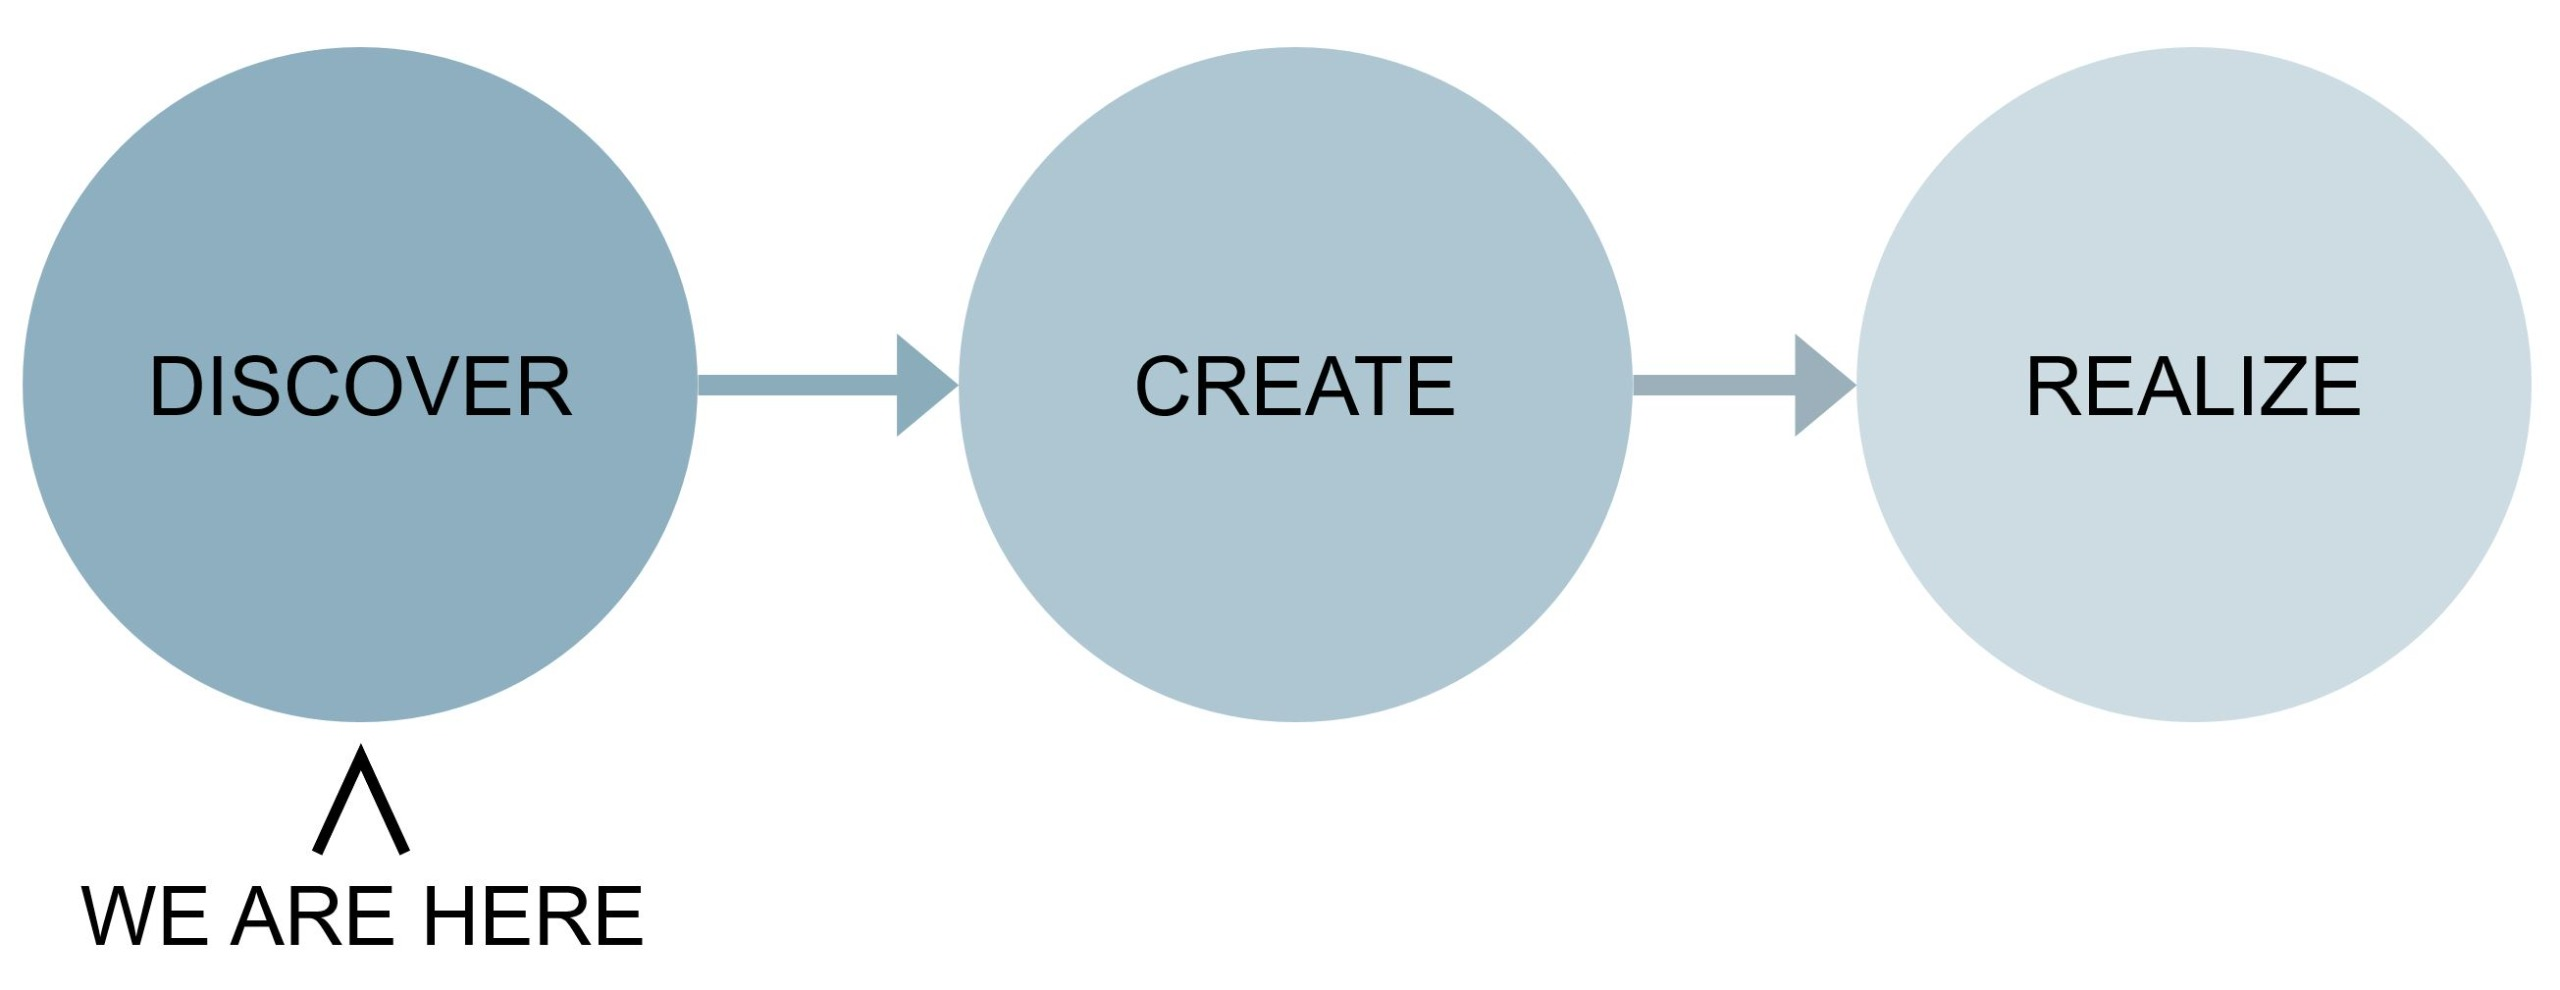 Discover-Create-Realize